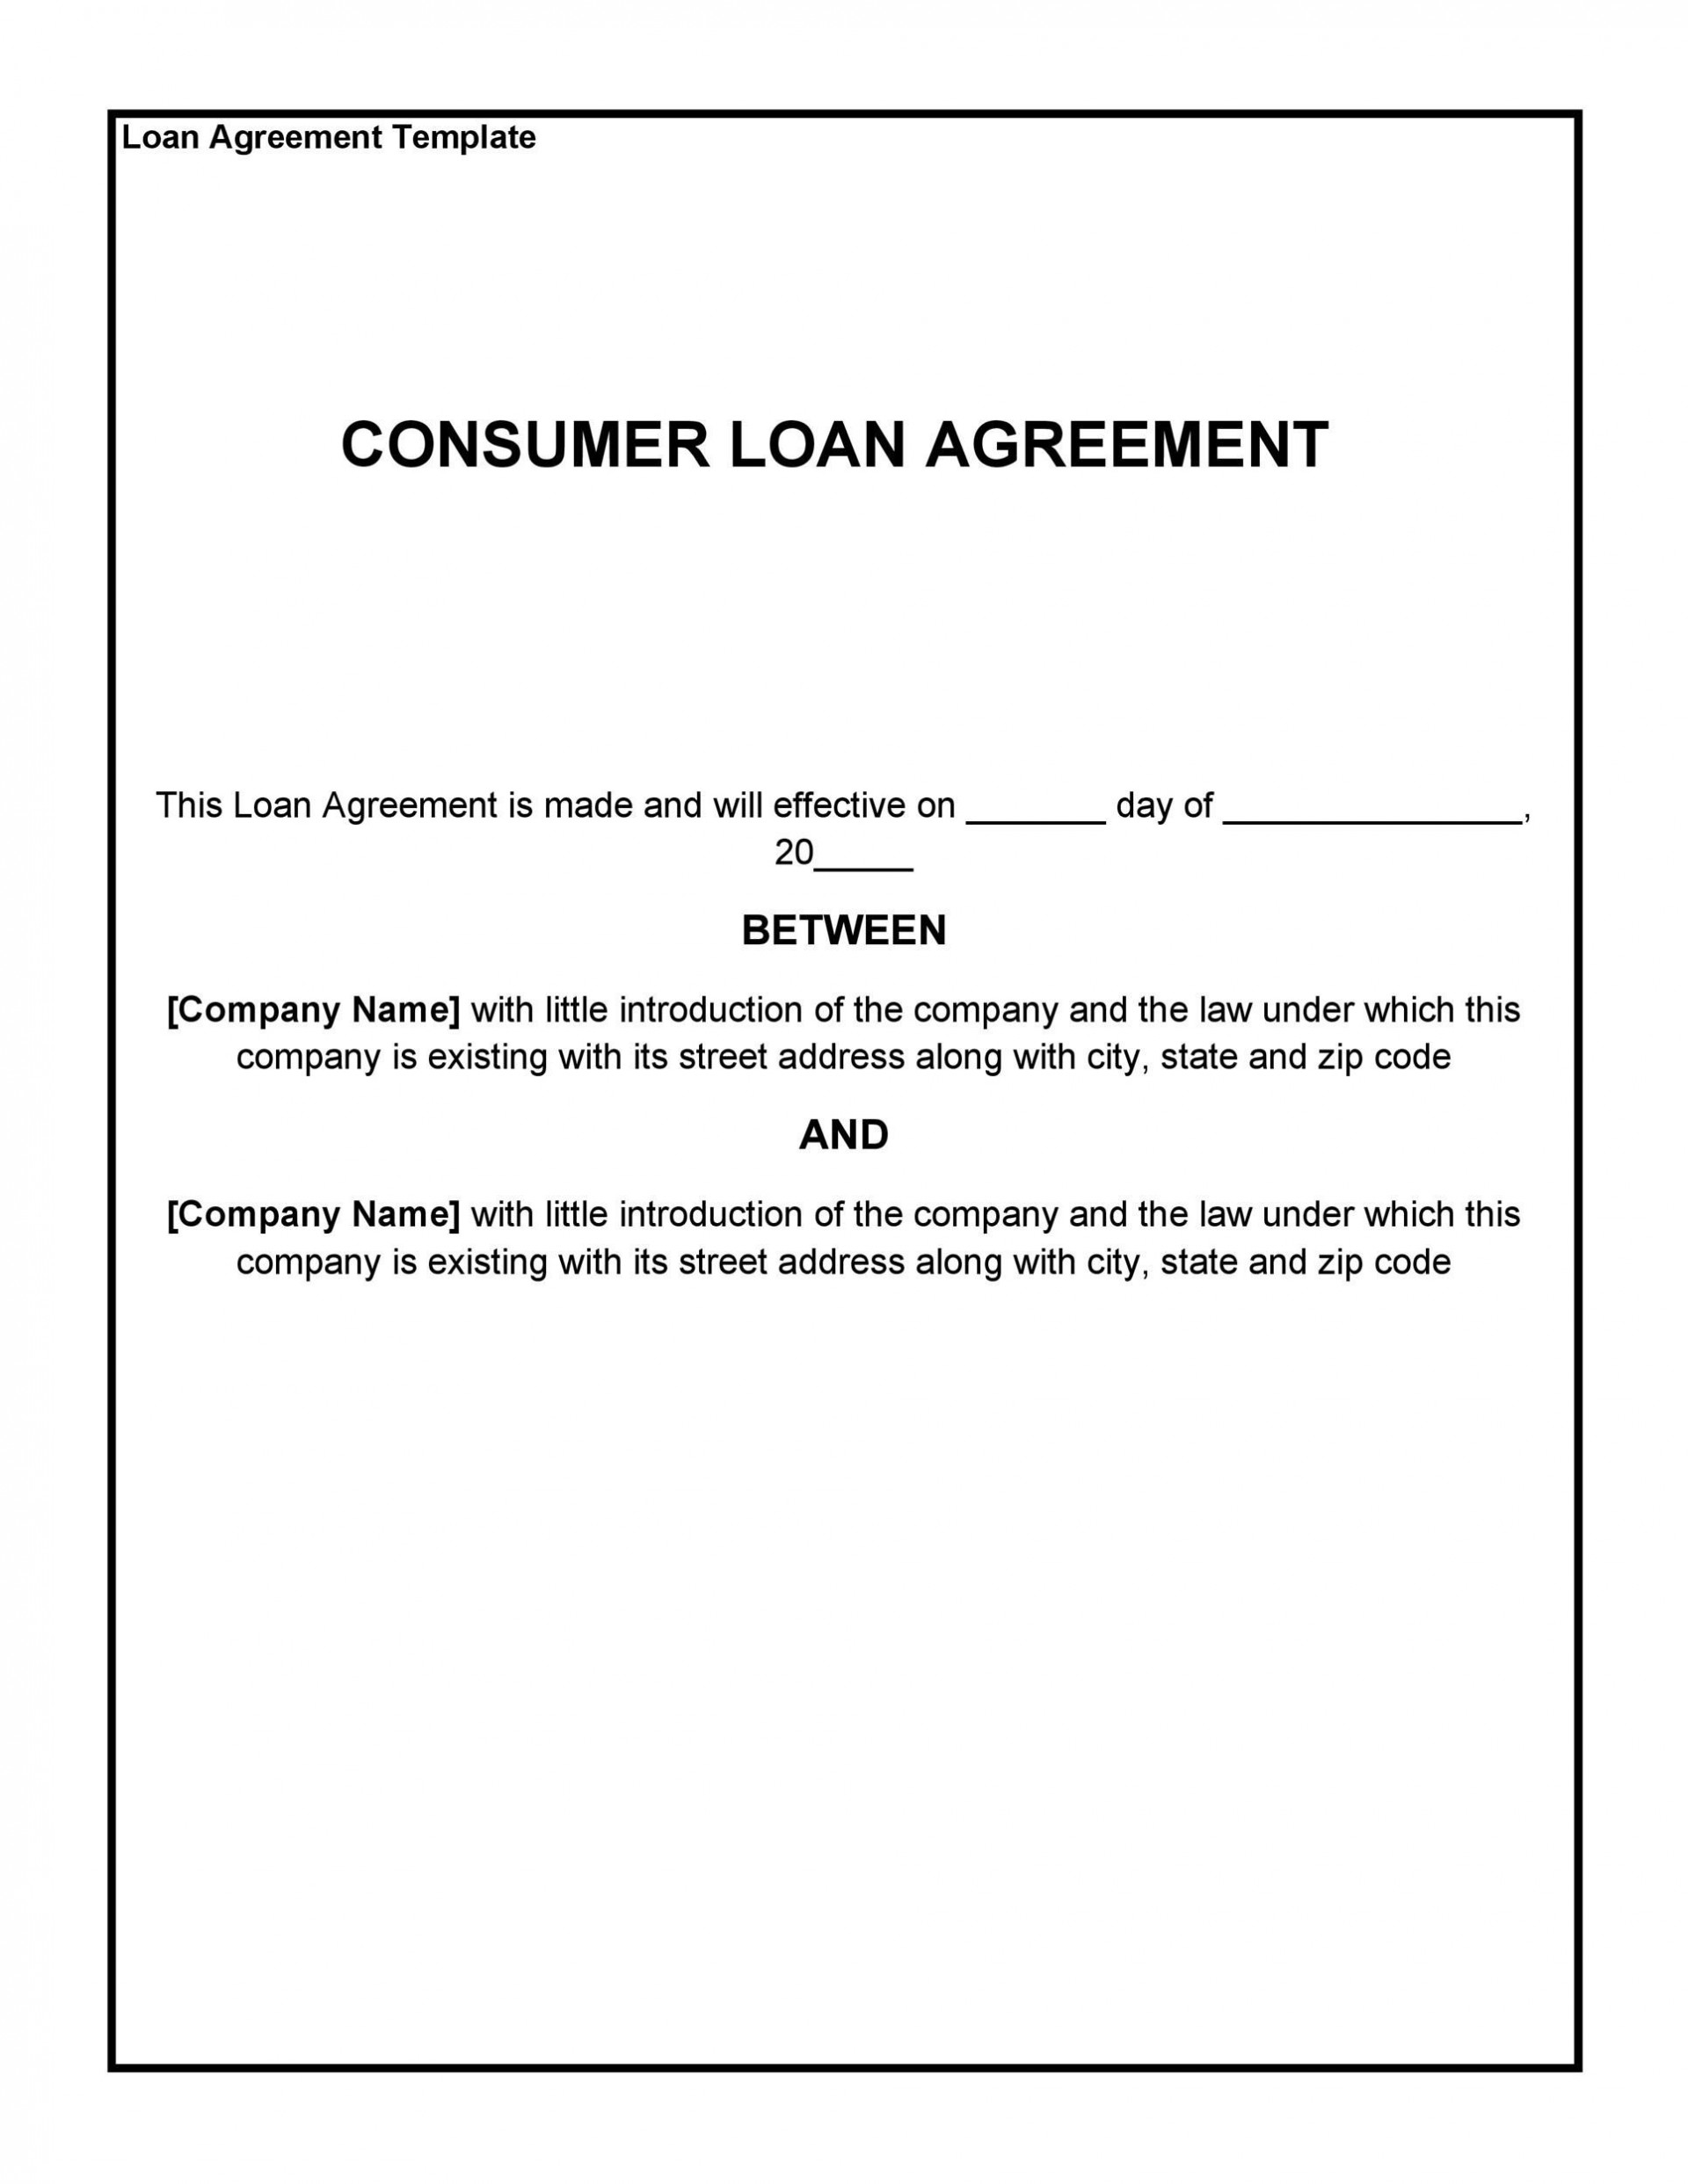 008 Fearsome Simple Family Loan Agreement Template Australia Design 1920